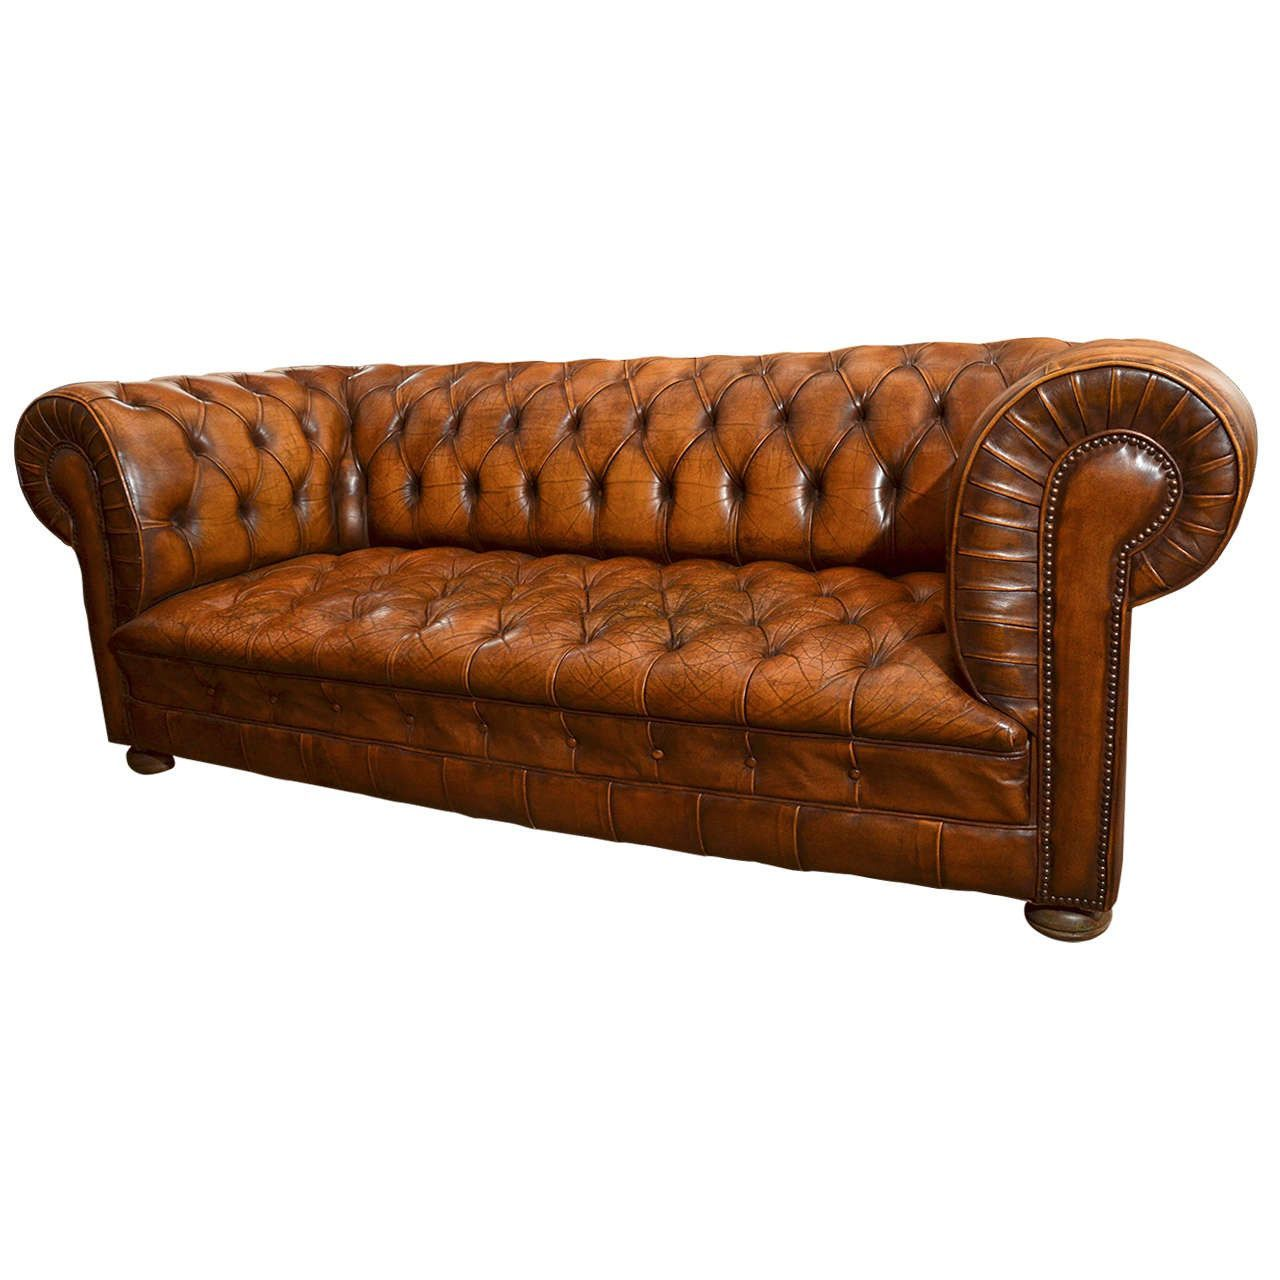 French 1970 S Chesterfield Sofa With Original Leather Leather Chesterfield Sofa Chesterfield Sofa Leather Chesterfield